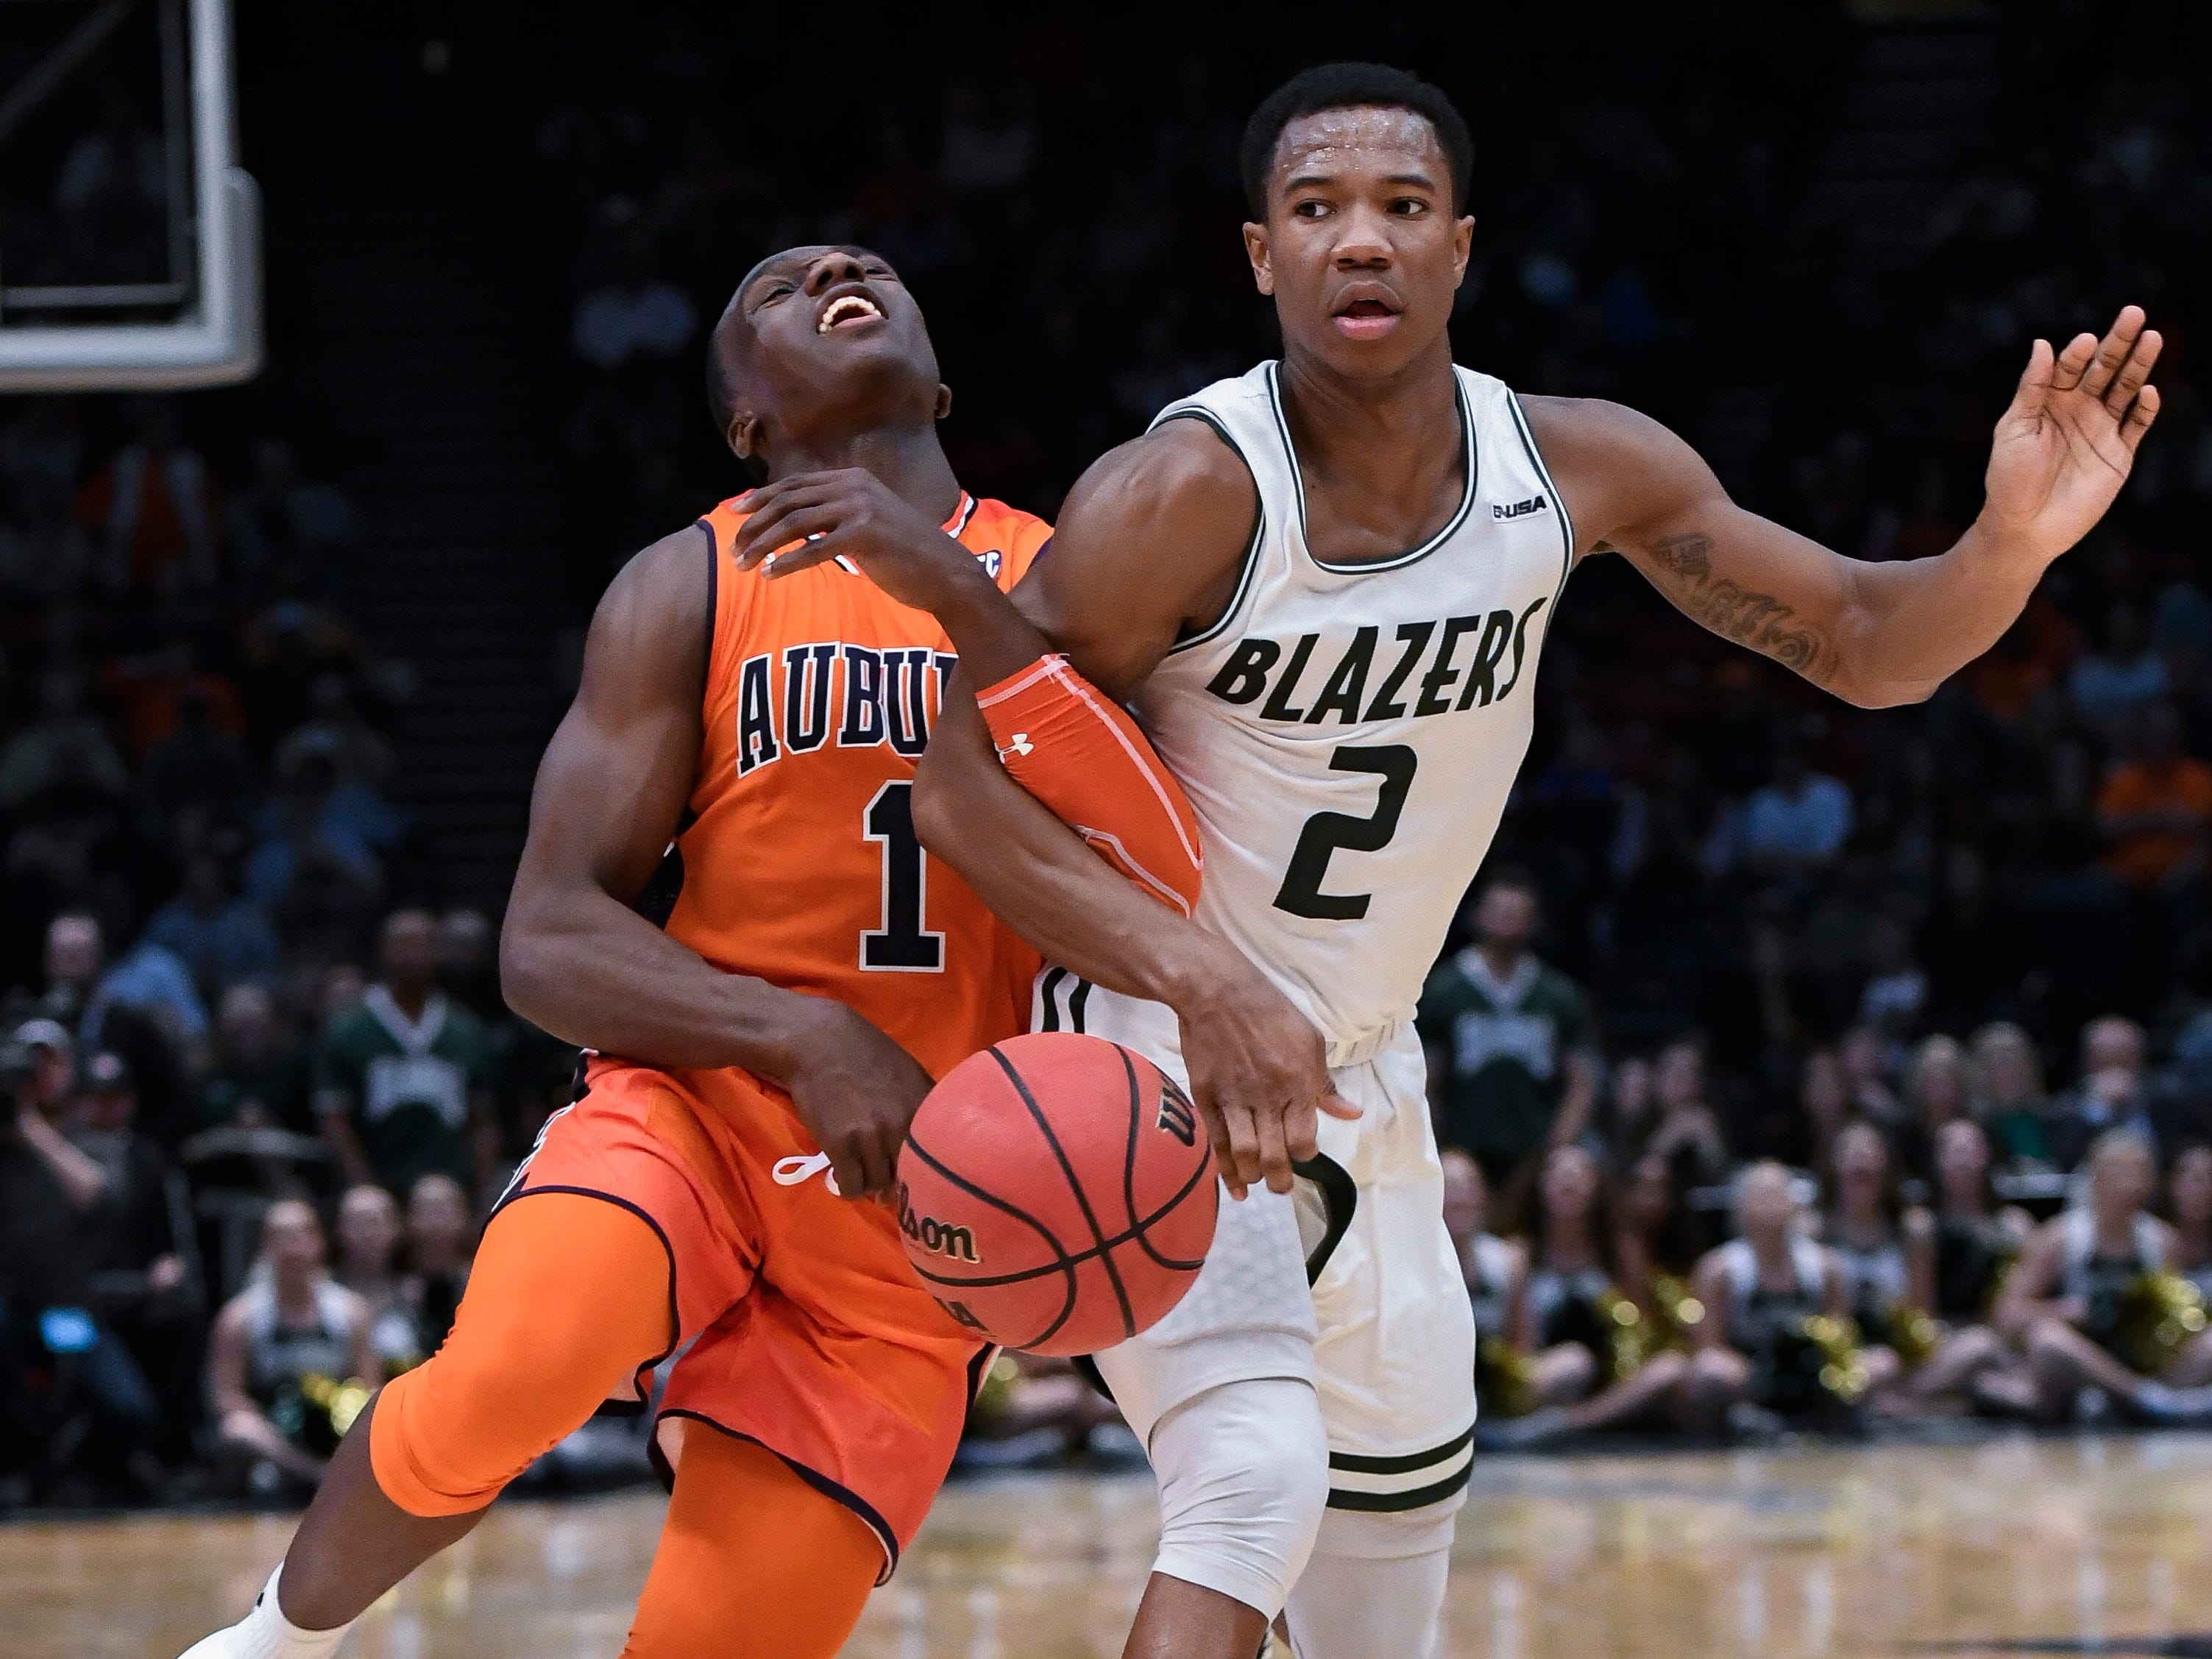 UAB guard Jeremiah Bell (2) fouls Auburn guard Jared Harper (1) during overtime on Saturday, Dec. 15, 2018, in Birmingham, Ala.